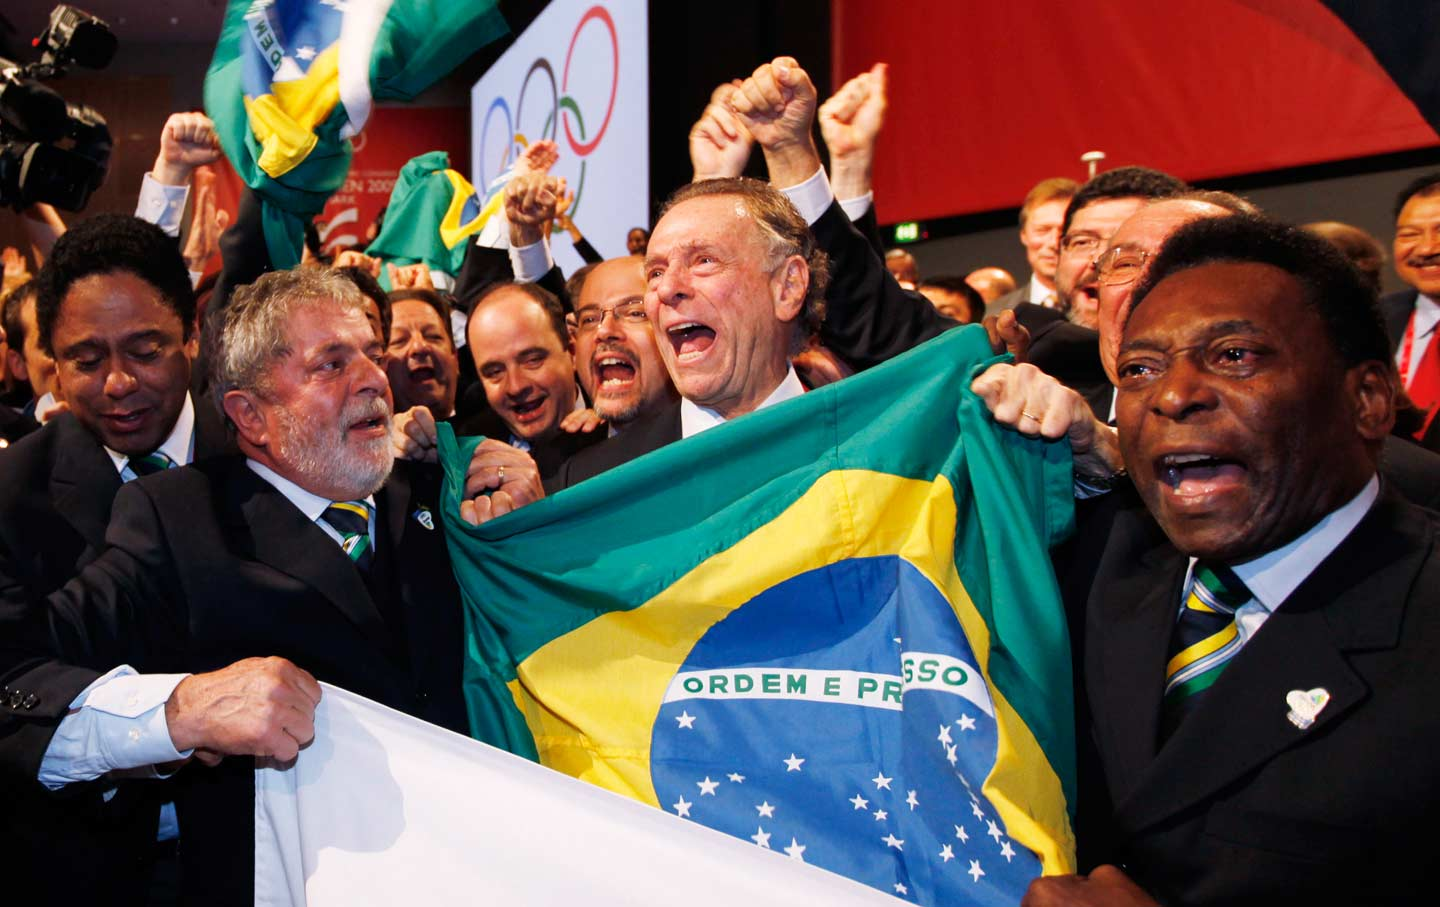 Brazlians celebrate Olympic bid win